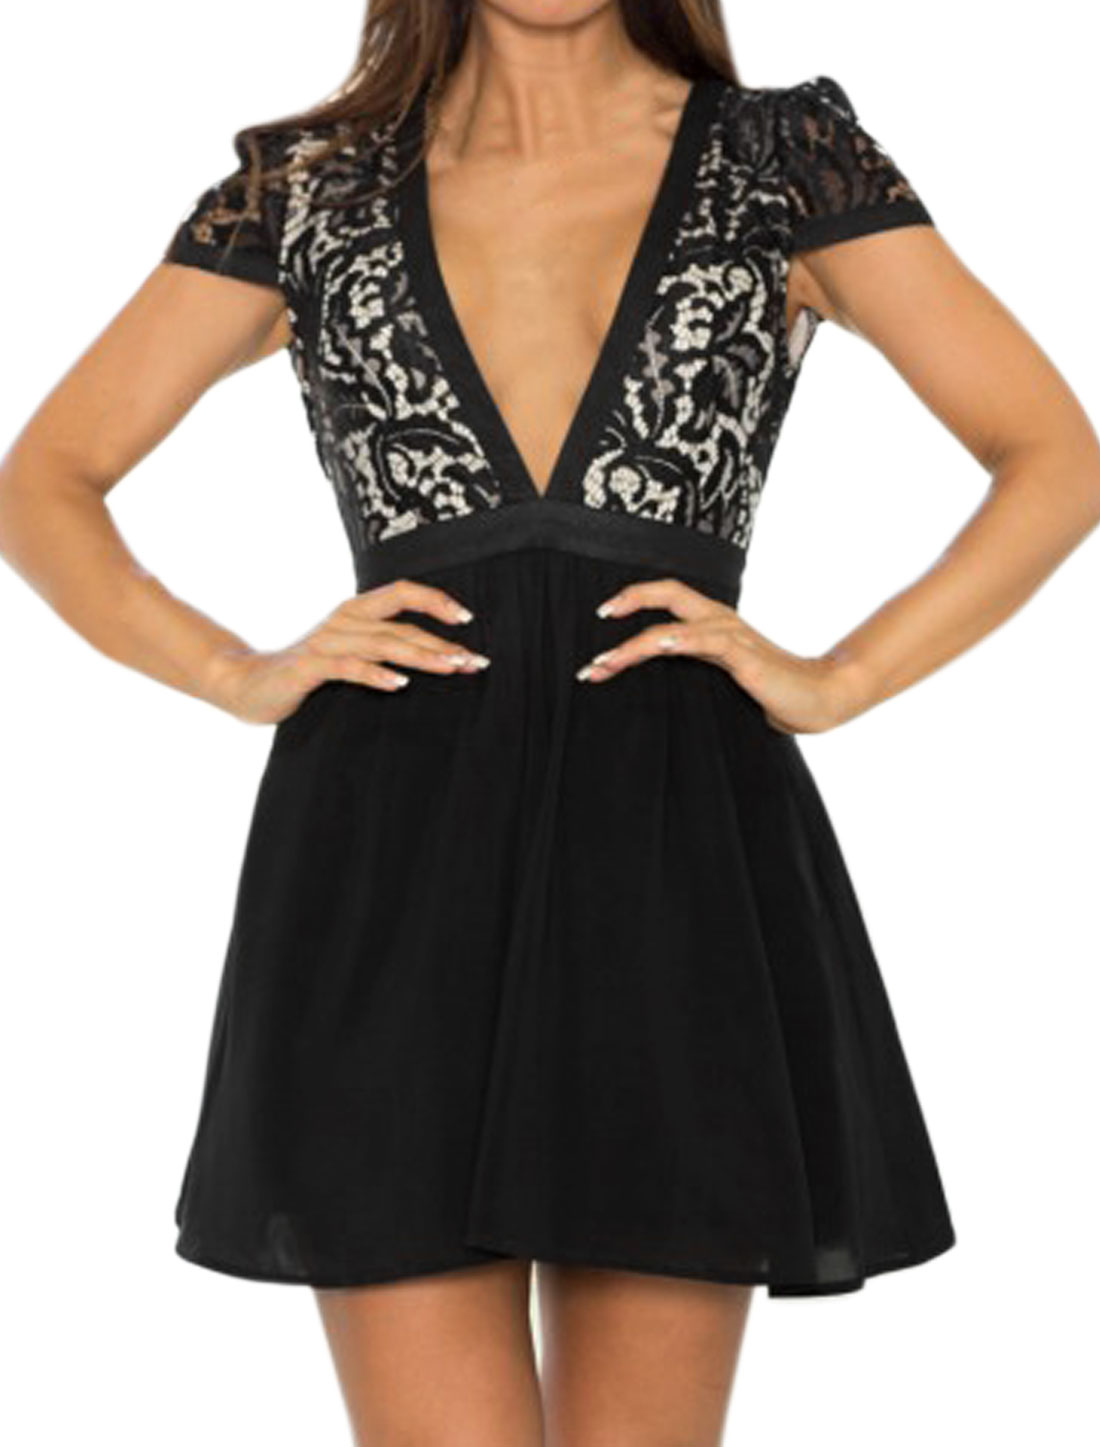 Women Cap Sleeves Deep V Neck Lace Panel Mini Dress Black M